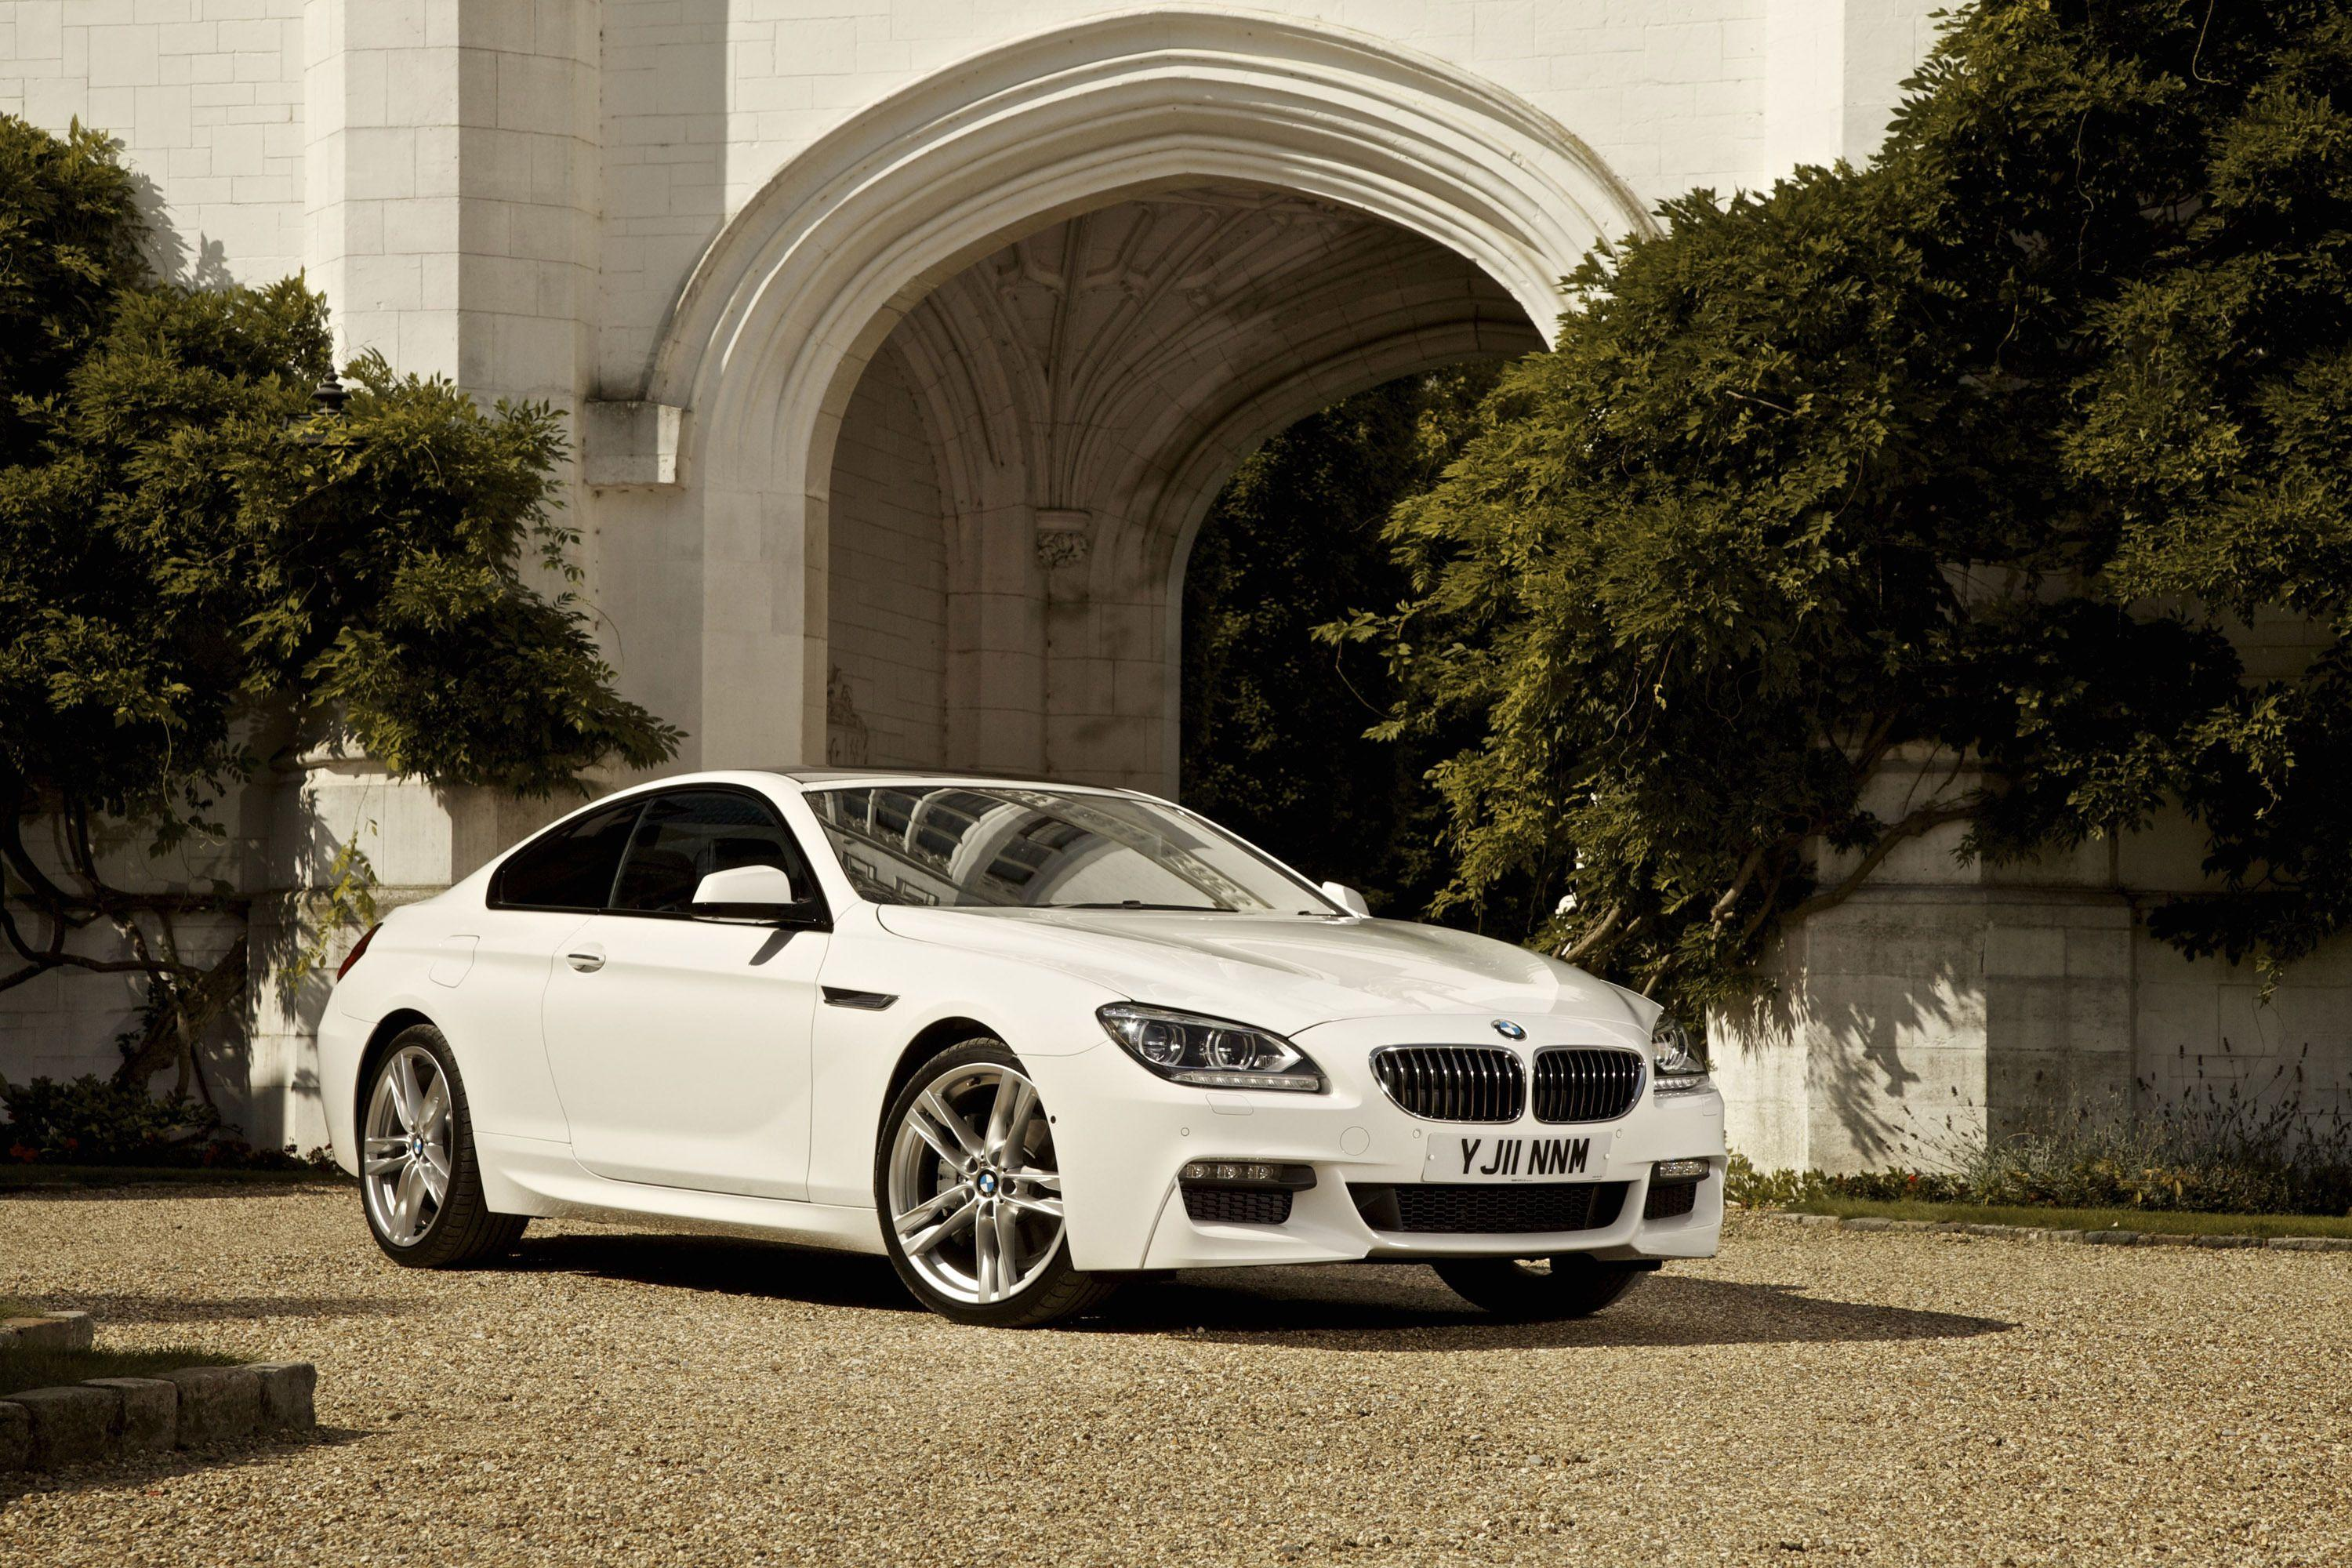 100+ ideas White 6 Series Bmw on fhetch.us